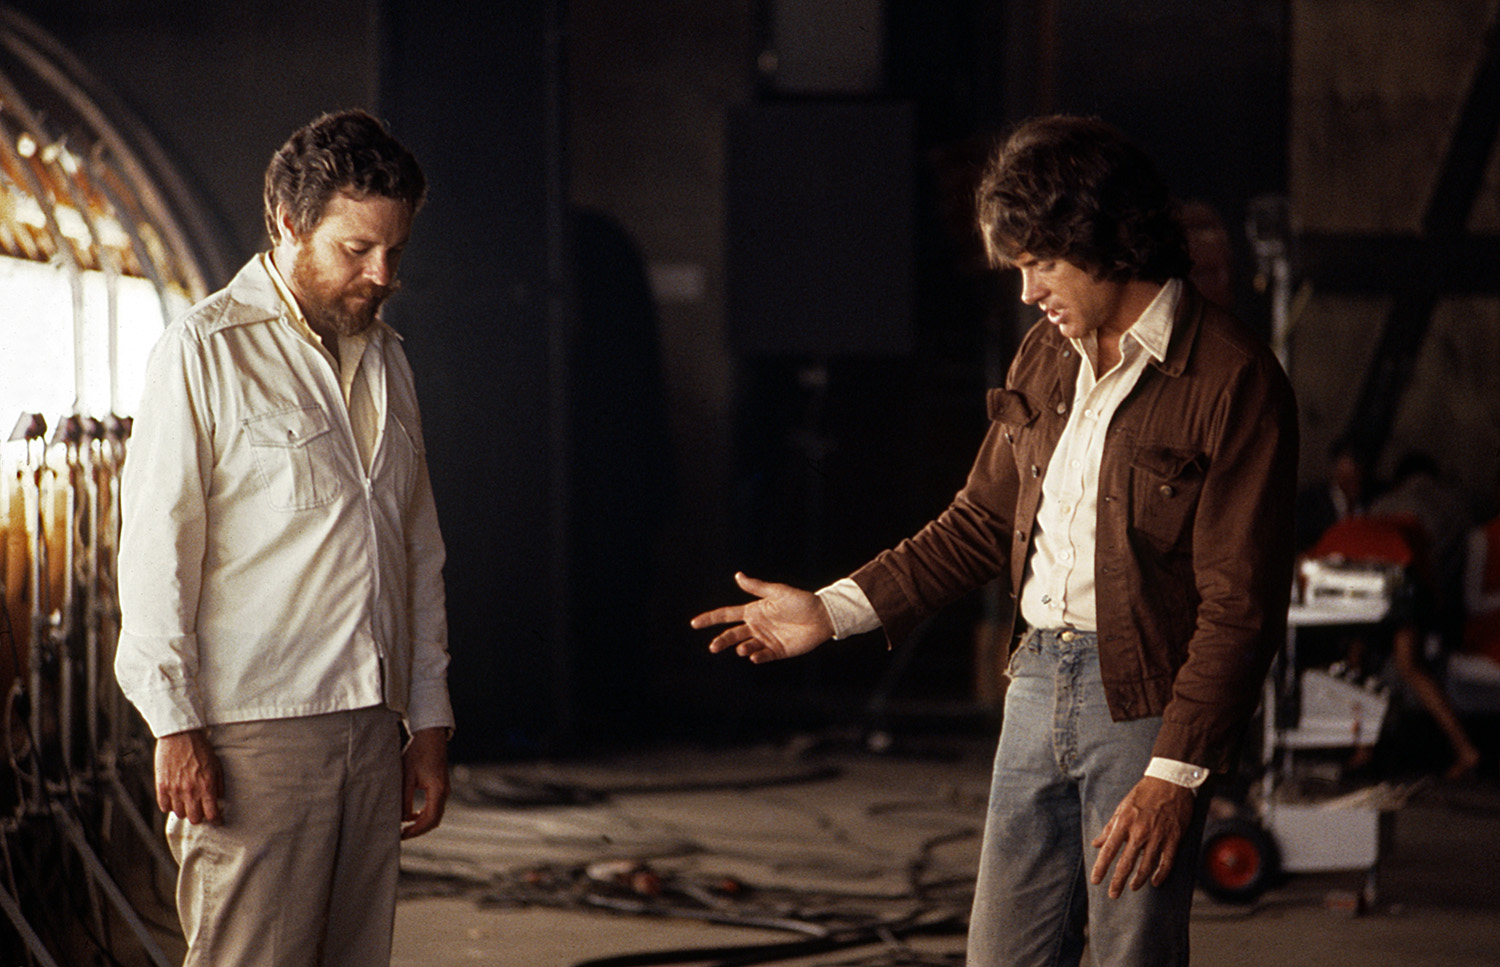 Alan Pakula and Warren Beatty, 1973 #2